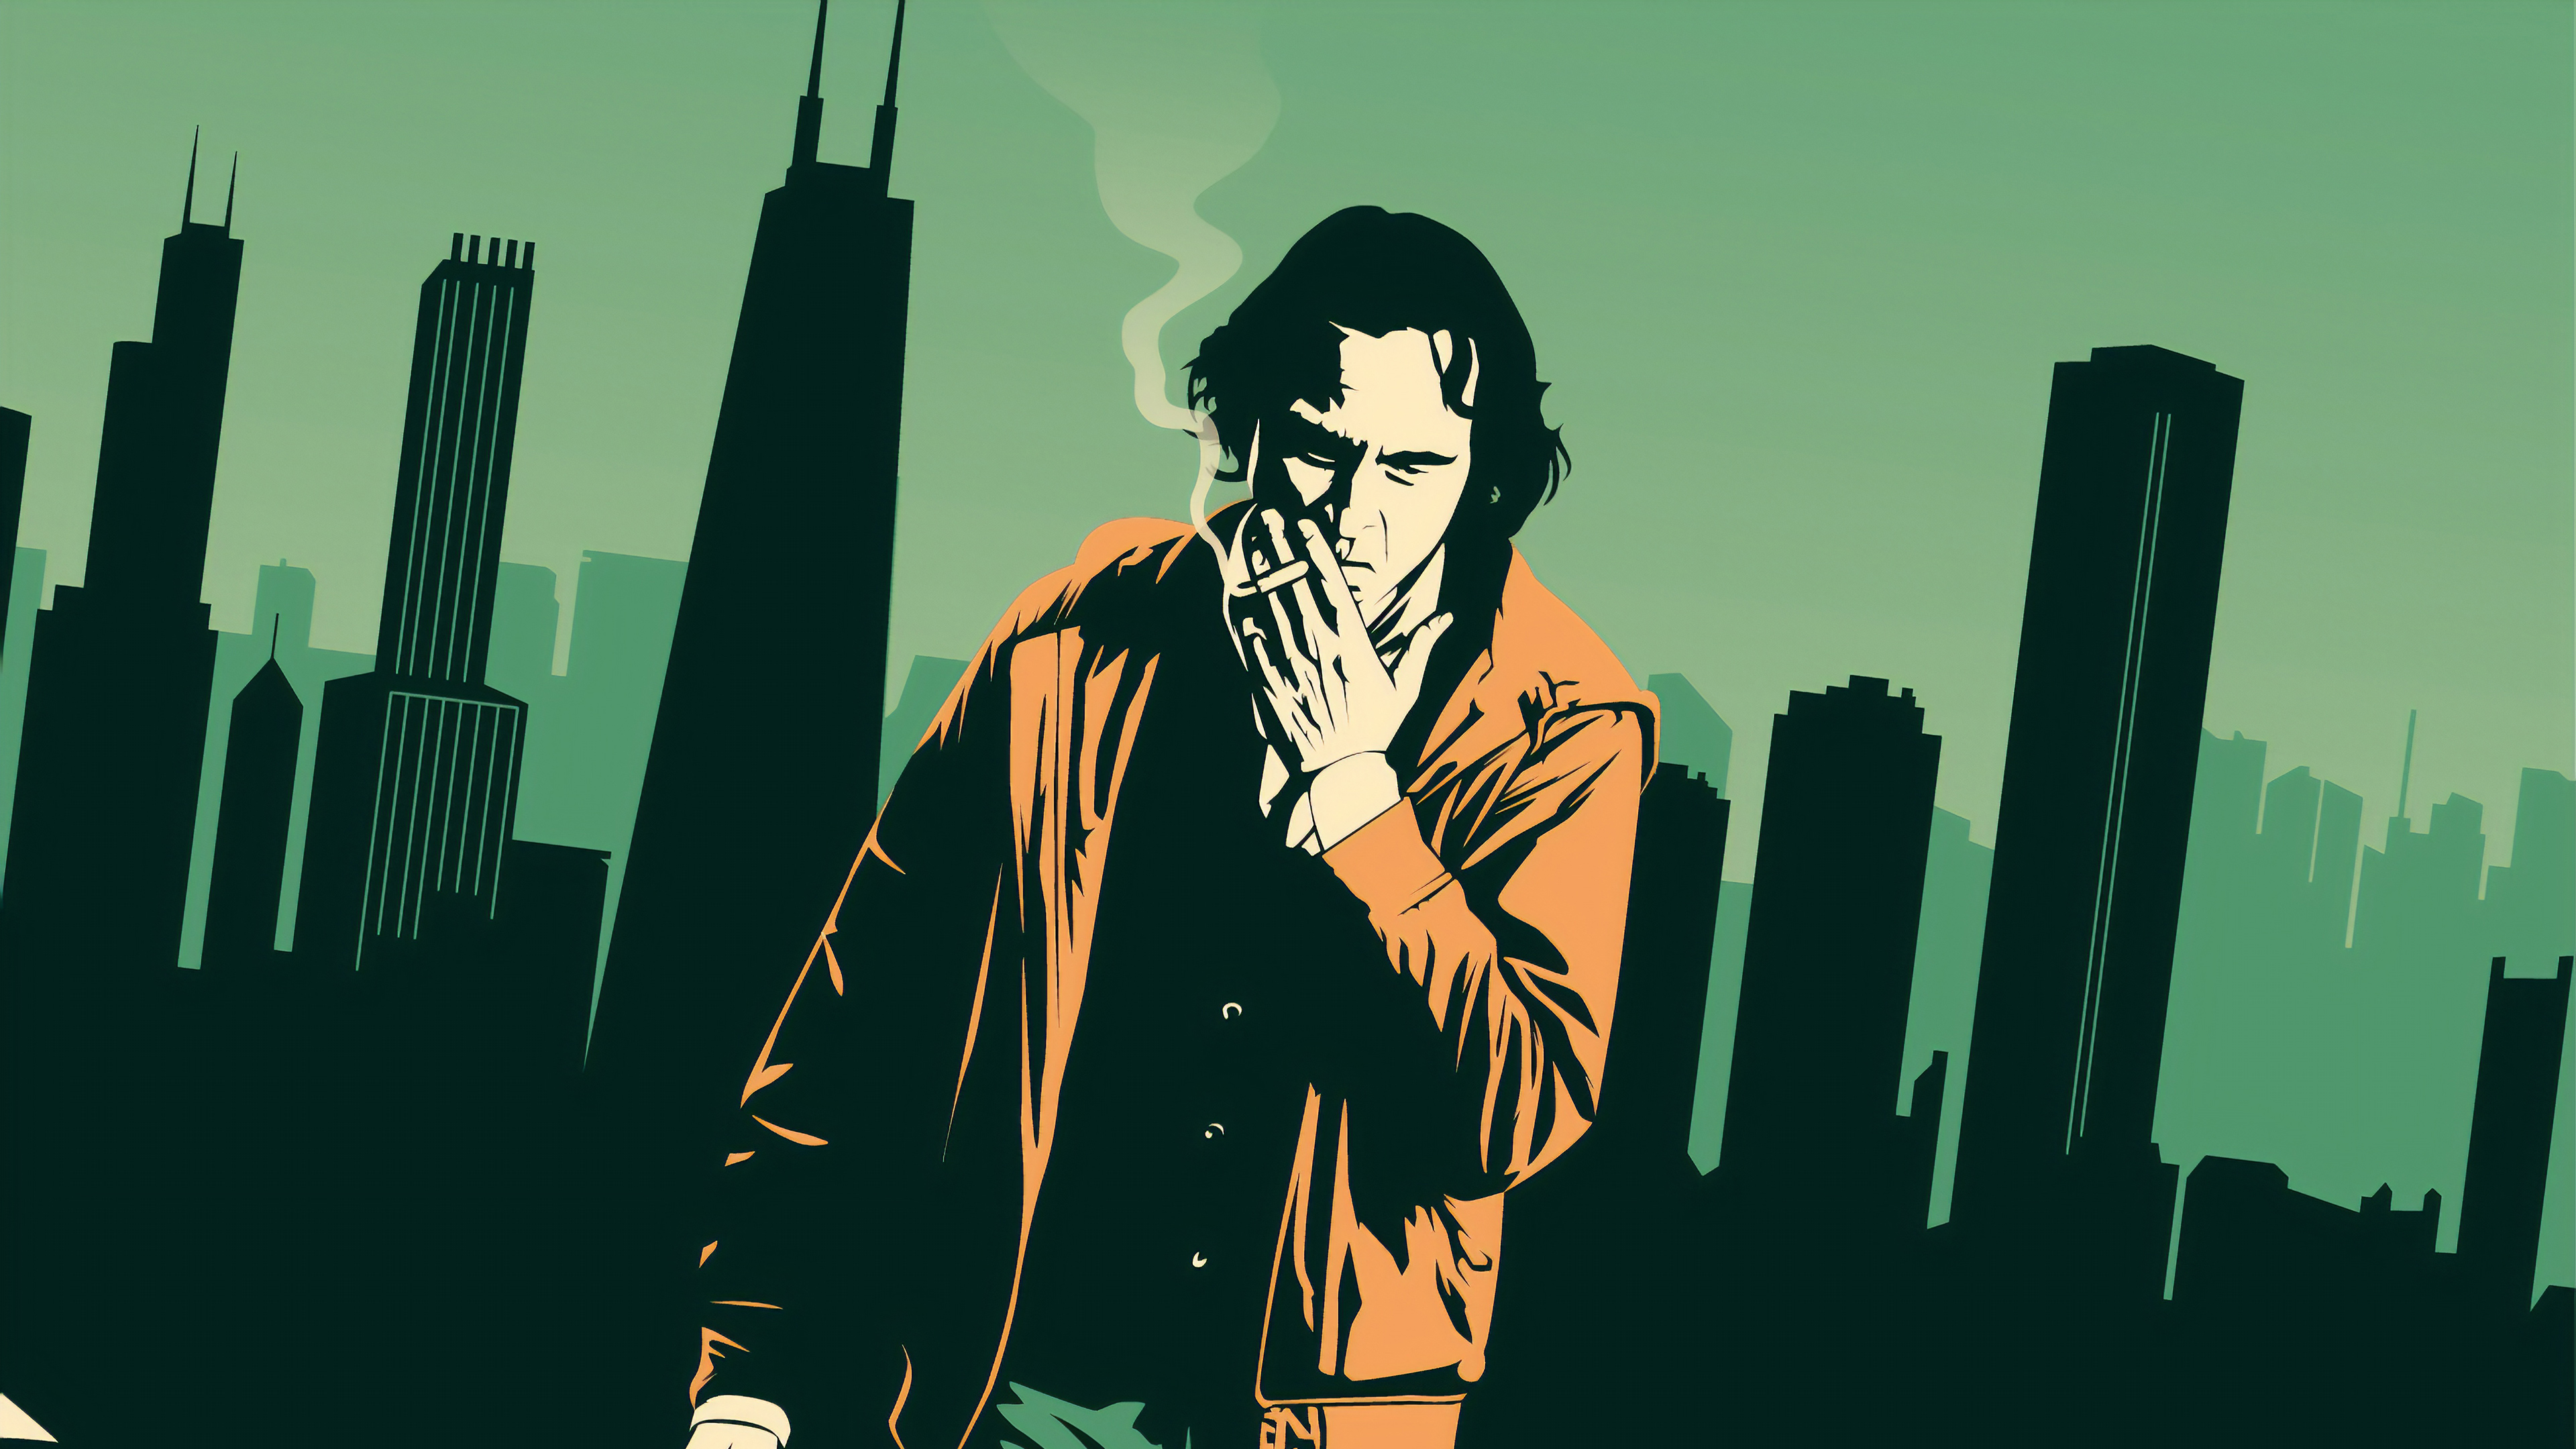 joaquin phoenix smoking 1570919692 - Joaquin Phoenix Smoking - smoking wallpapers, poster wallpapers, movies wallpapers, joker wallpapers, joker movie wallpapers, joaquin phoenix wallpapers, hd-wallpapers, behance wallpapers, 2019 movies wallpapers